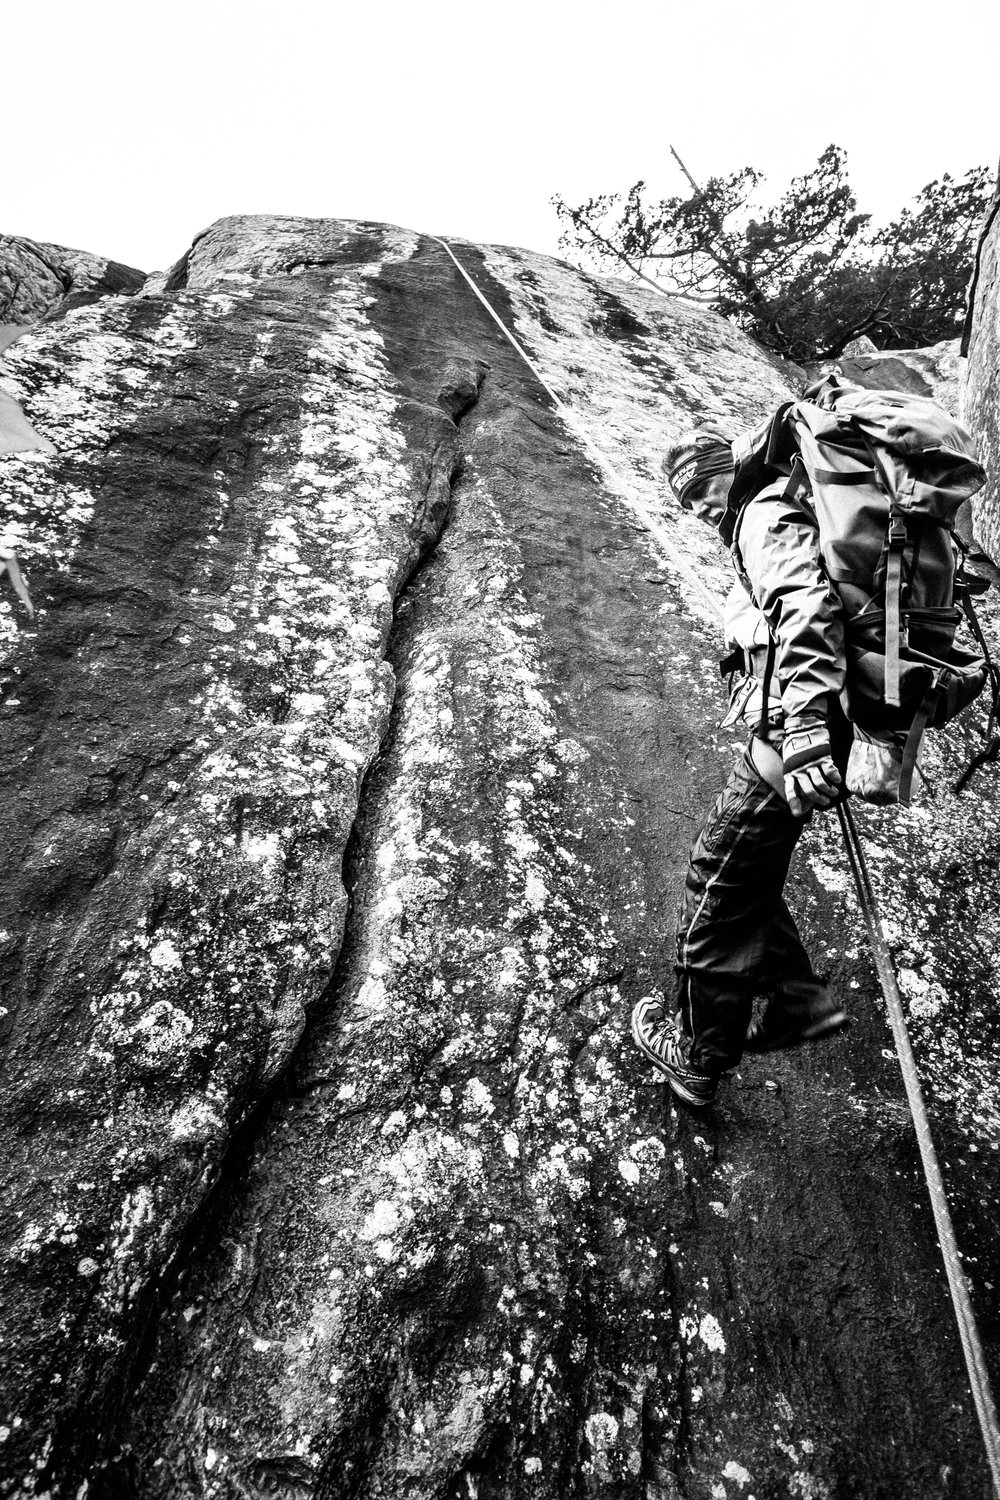 4-22-17 Rock Climbing black & white-7.jpg